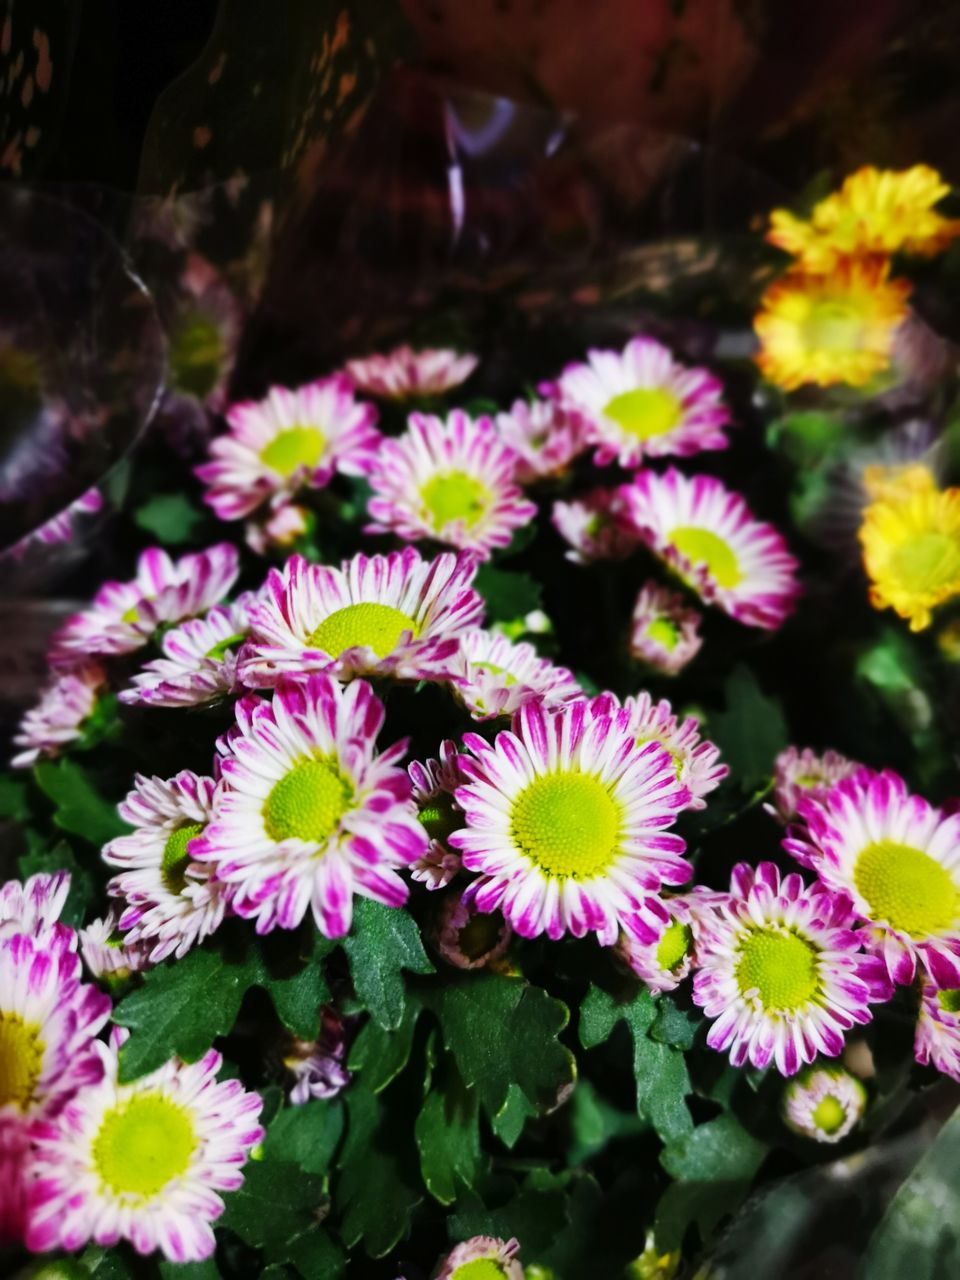 flower, flowering plant, plant, fragility, vulnerability, beauty in nature, petal, flower head, freshness, inflorescence, close-up, growth, nature, pink color, outdoors, leaf, no people, plant part, day, multi colored, purple